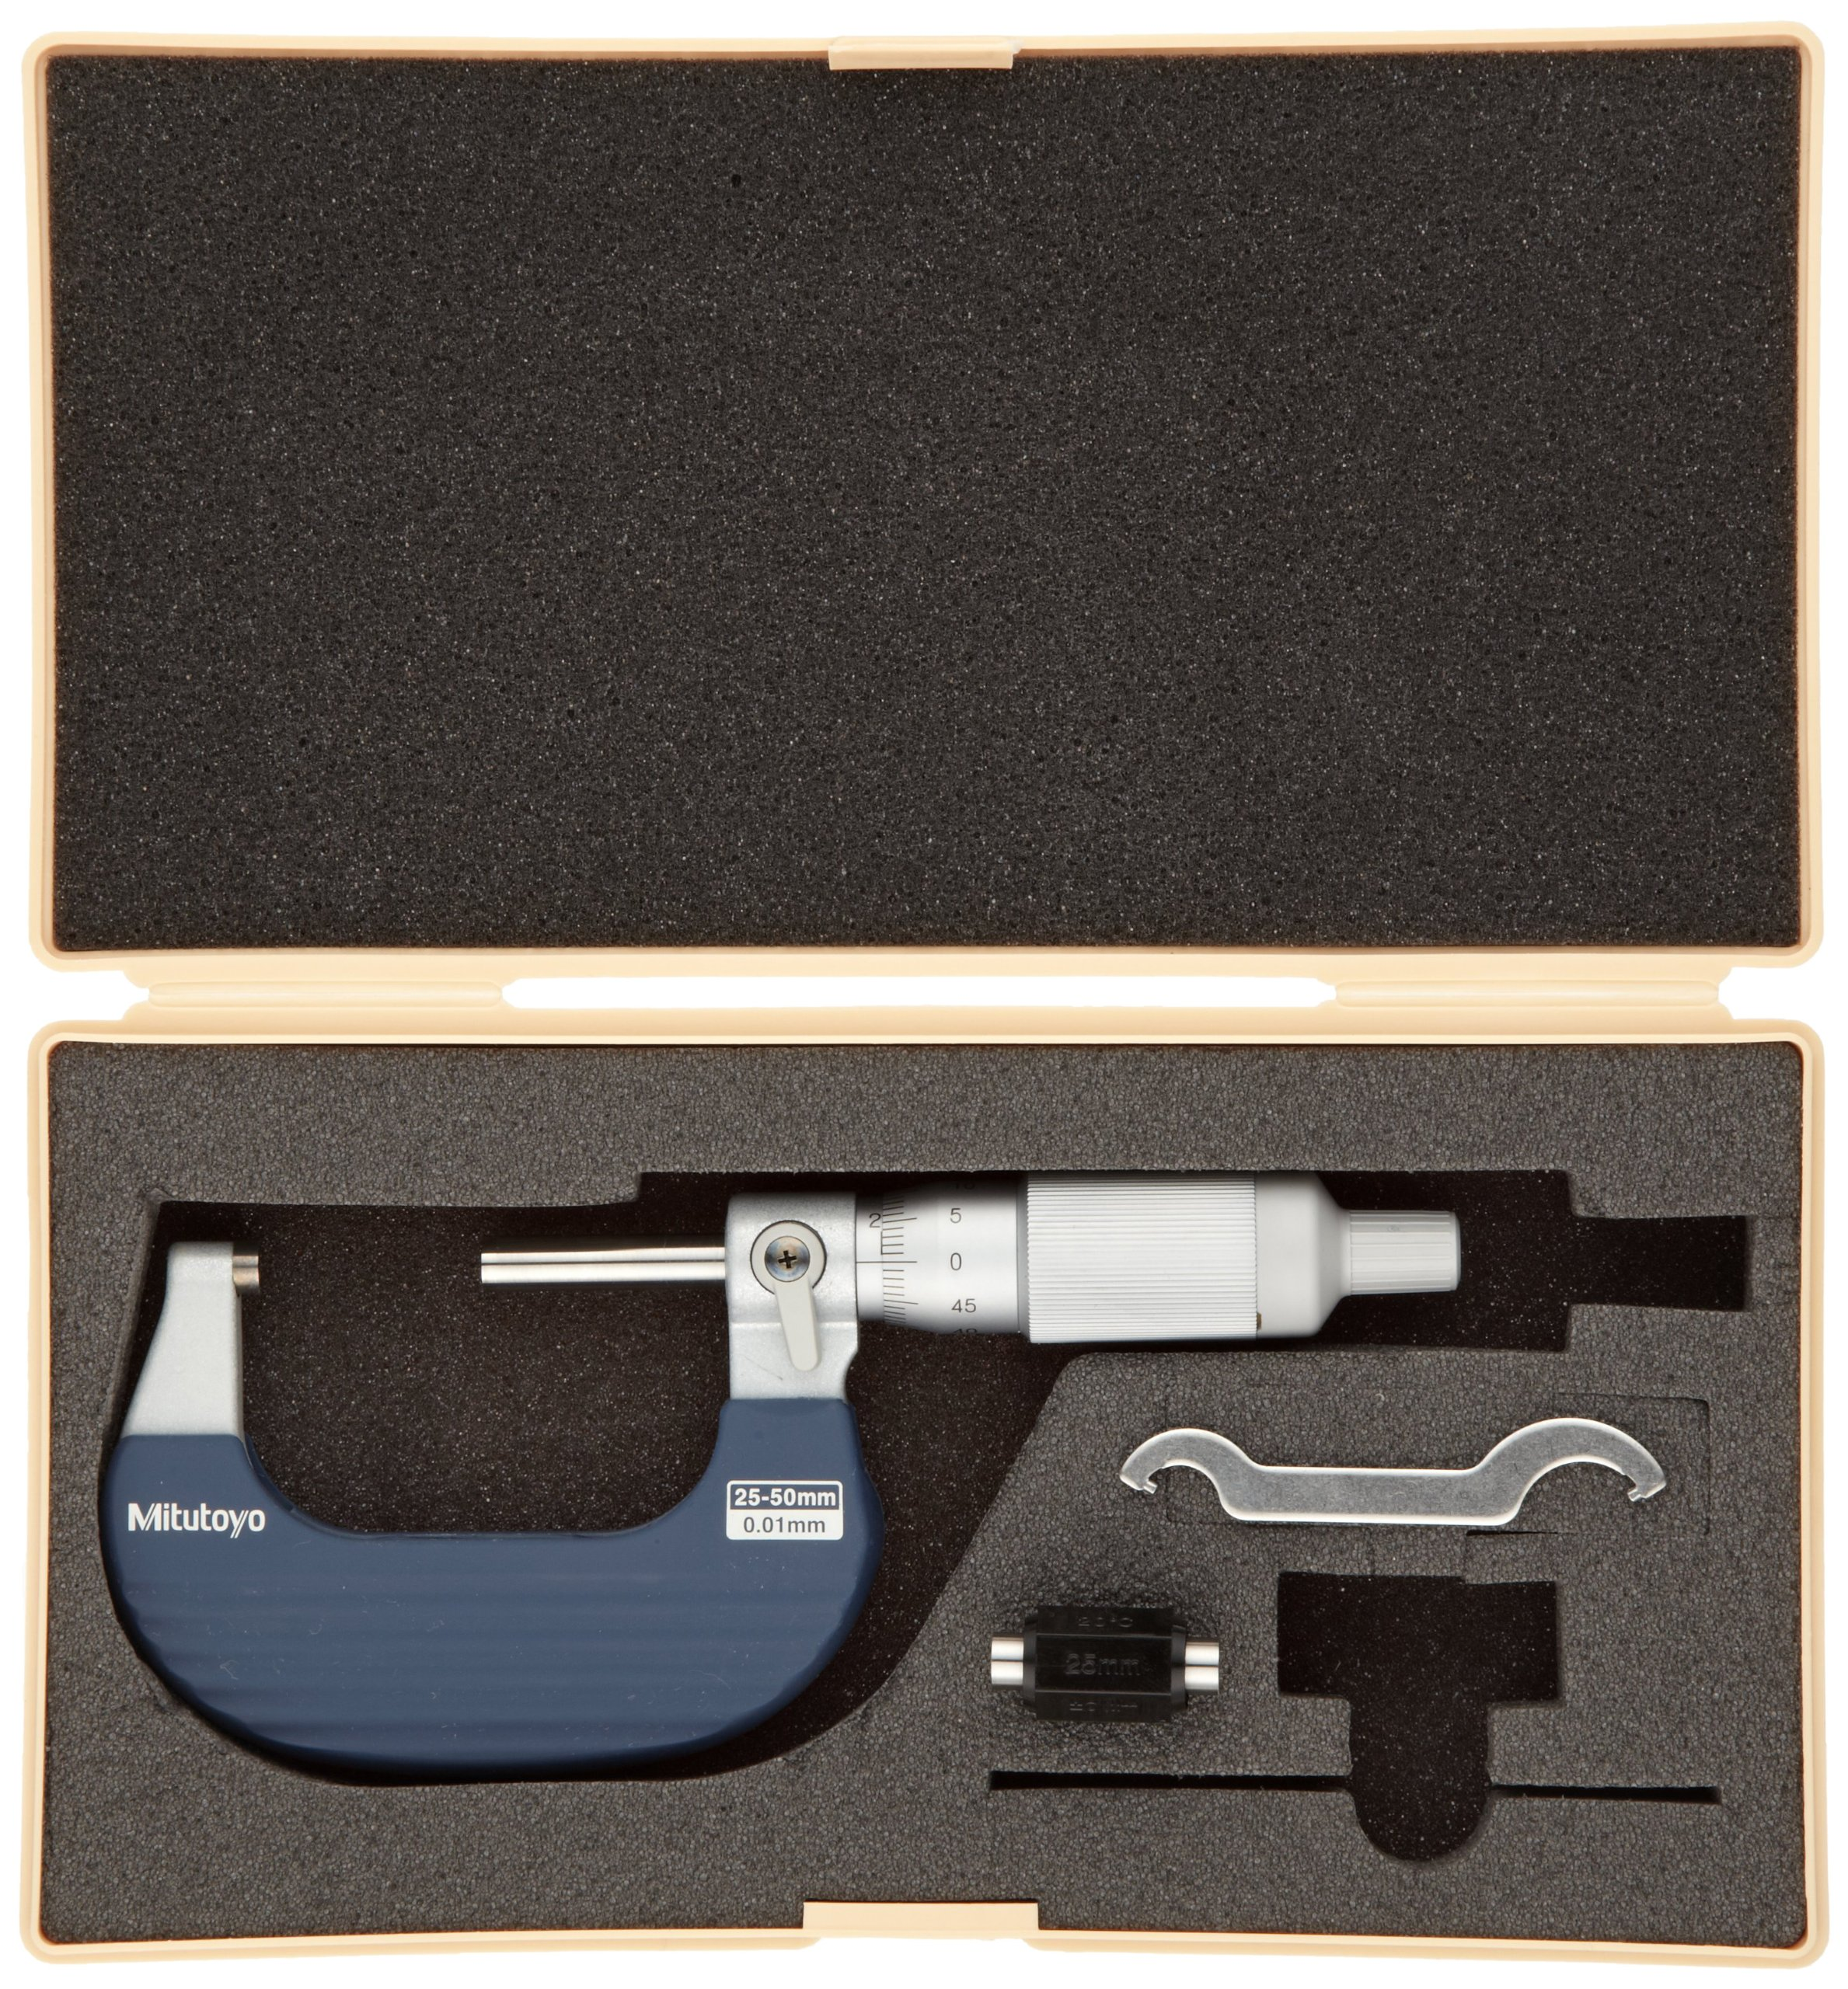 Mitutoyo 102-702 Ratchet Thimble Micrometer, Outside Micrometer, Ratchet Thimble, 25-50mm Range, 0.01mm Graduation, +/-0.002mm Accuracy